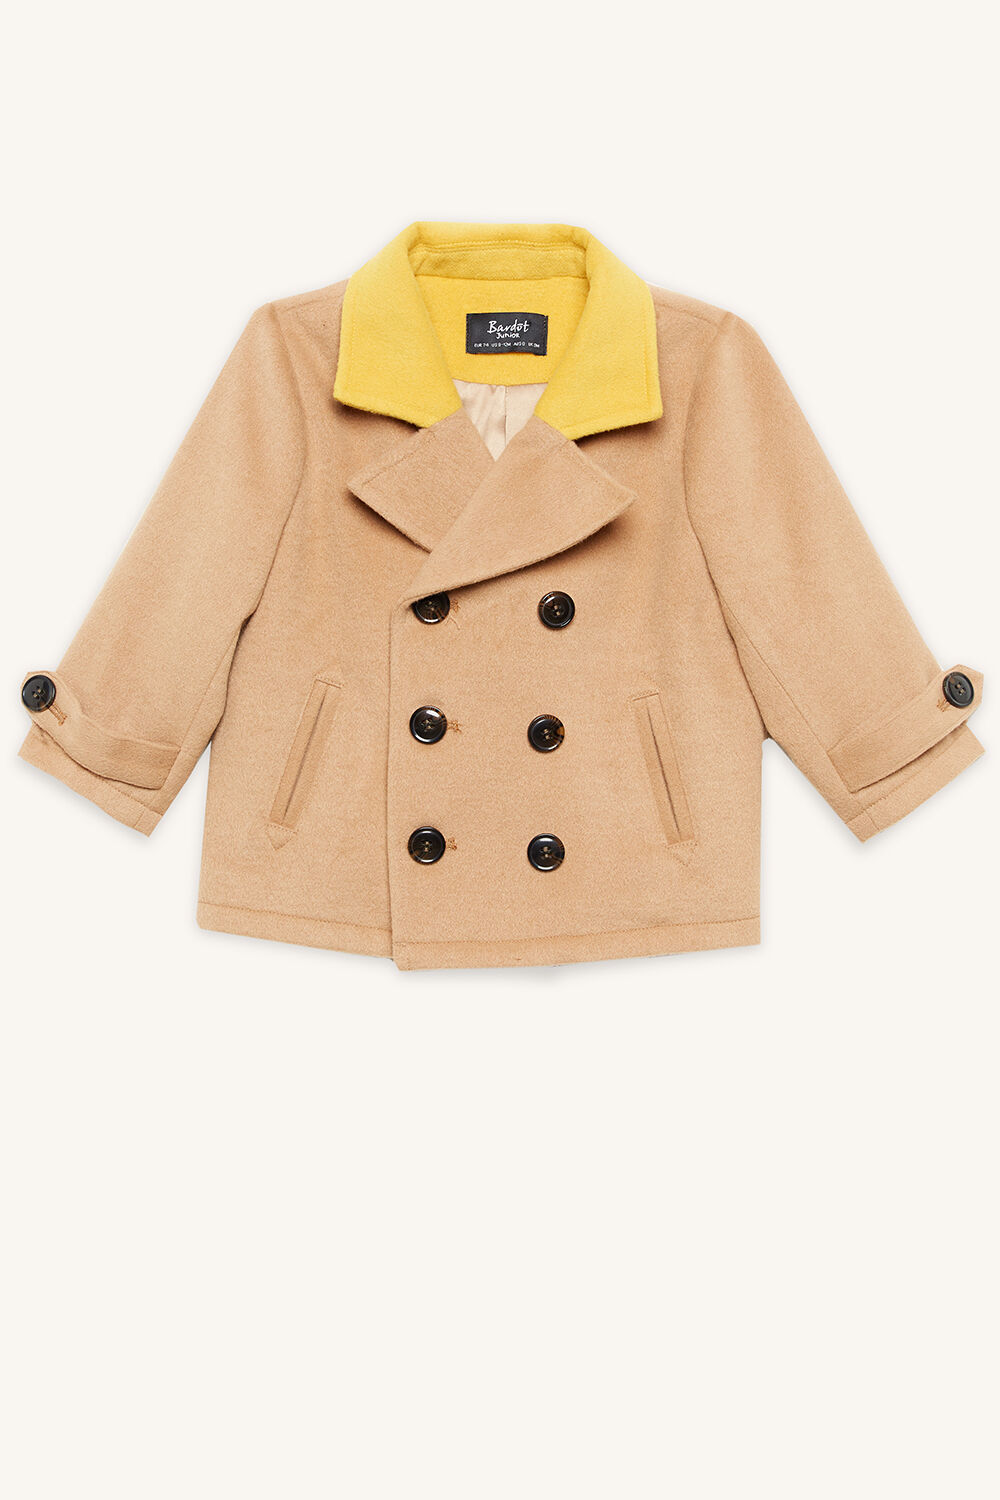 EASTON PEACOAT in colour TAN